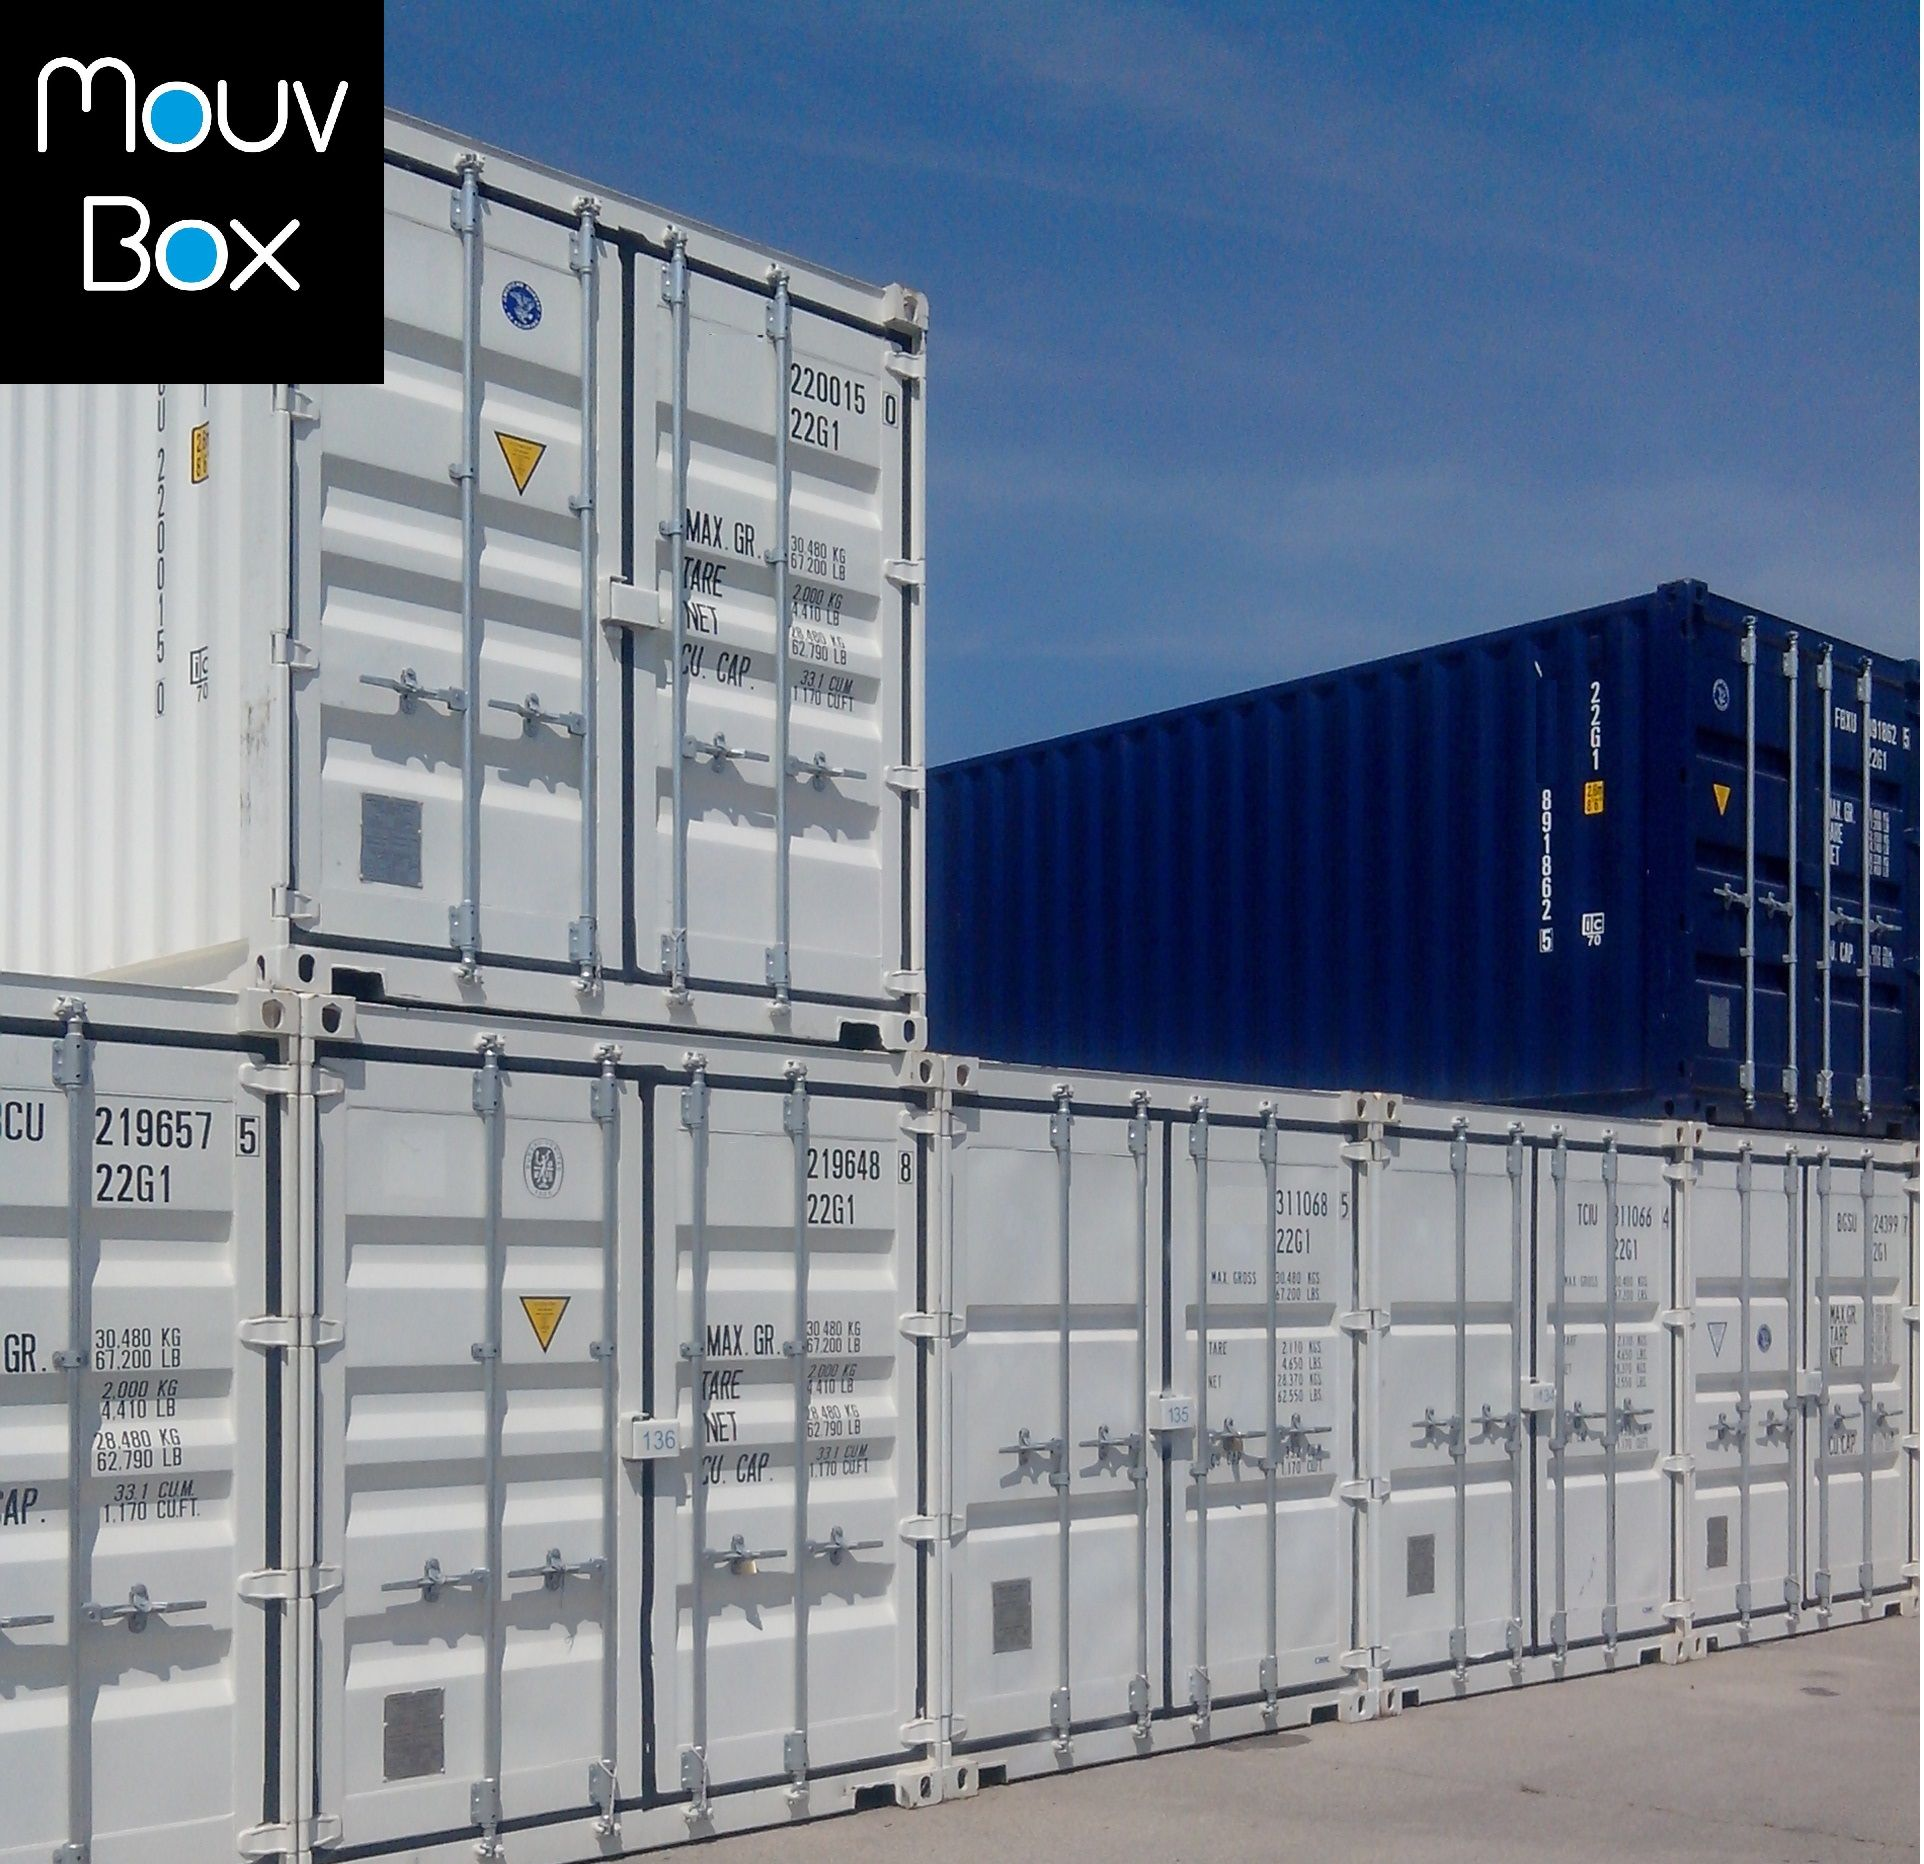 Mouvbox France Creation De Centres De Self Stockage Garde Meubles